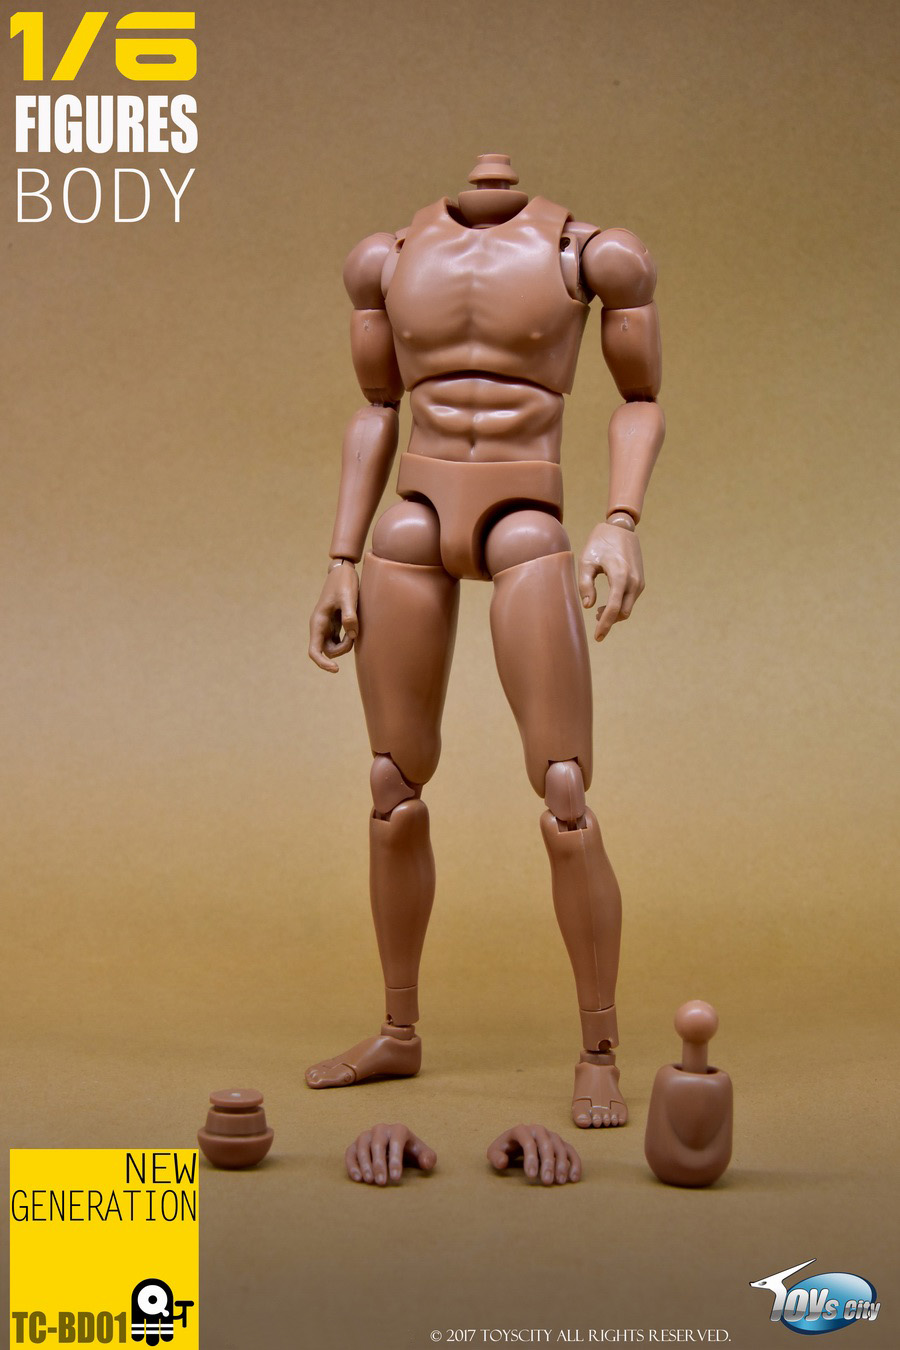 TOYSCITY BD01 1/6 Male Narrow Figure Body